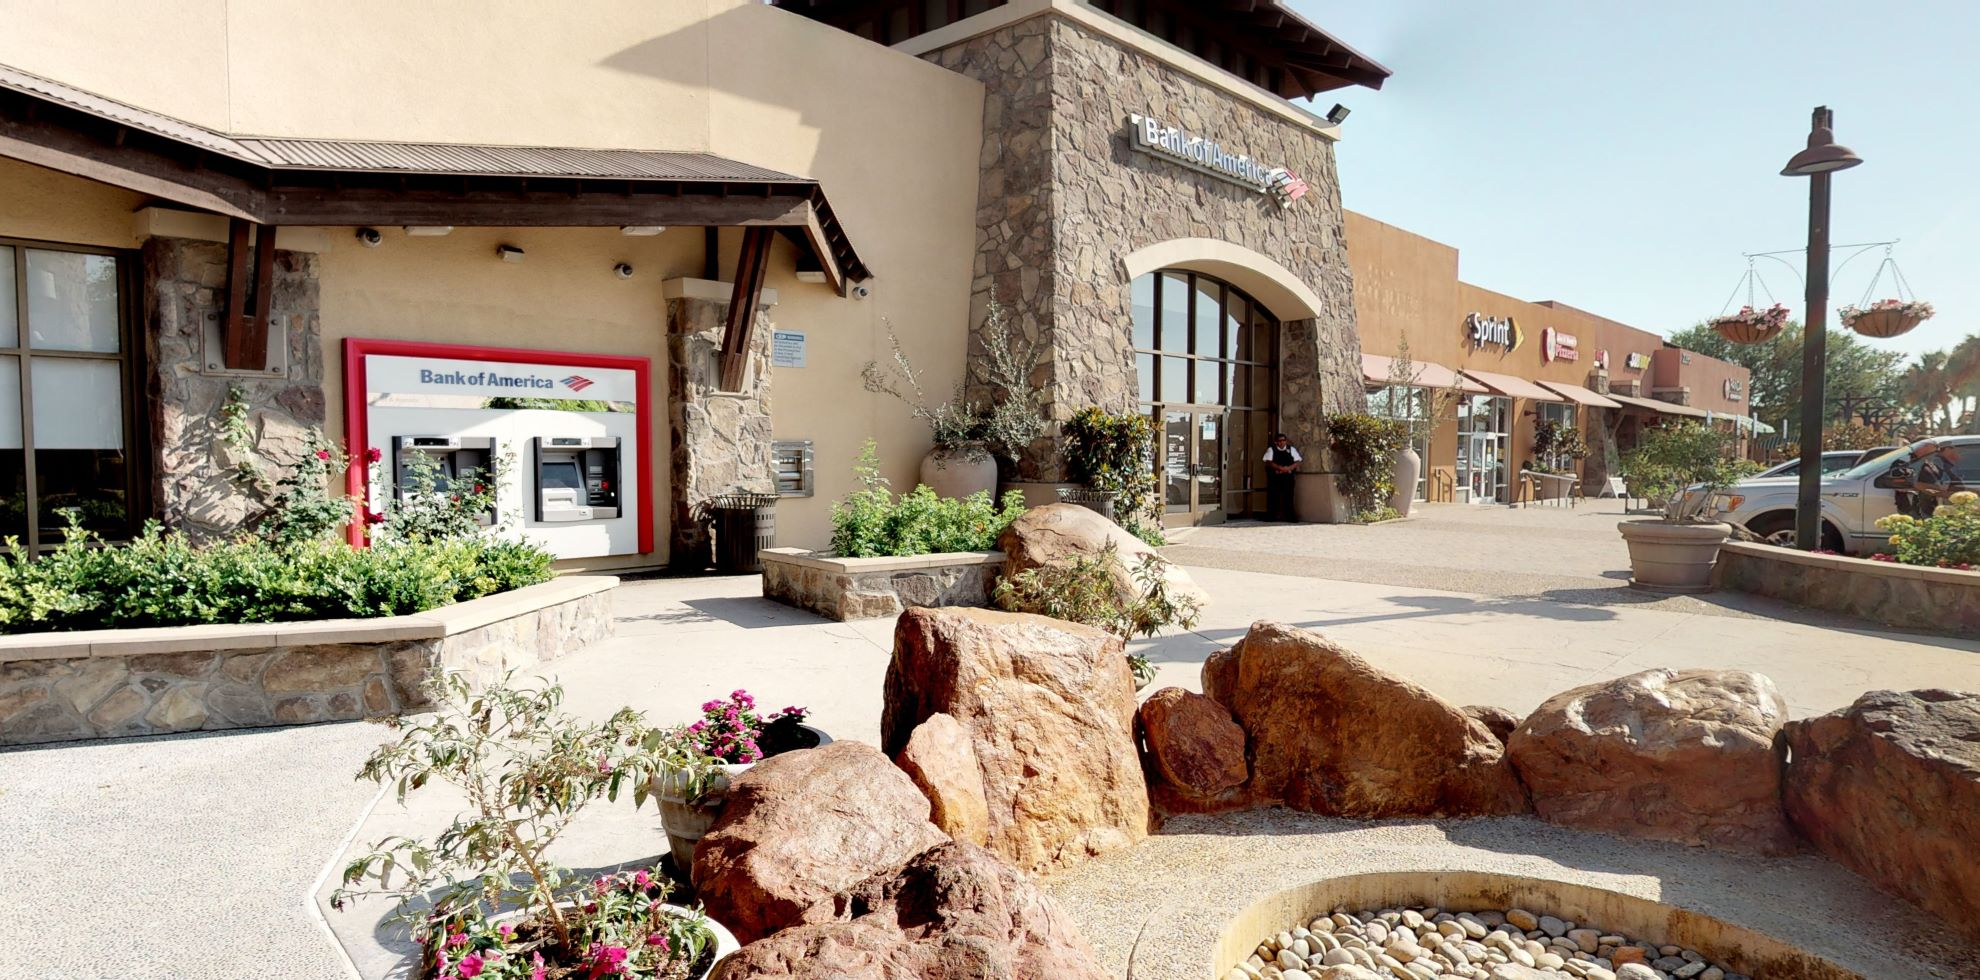 Bank of America financial center with walk-up ATM   2295 Otay Lakes Rd, Chula Vista, CA 91915